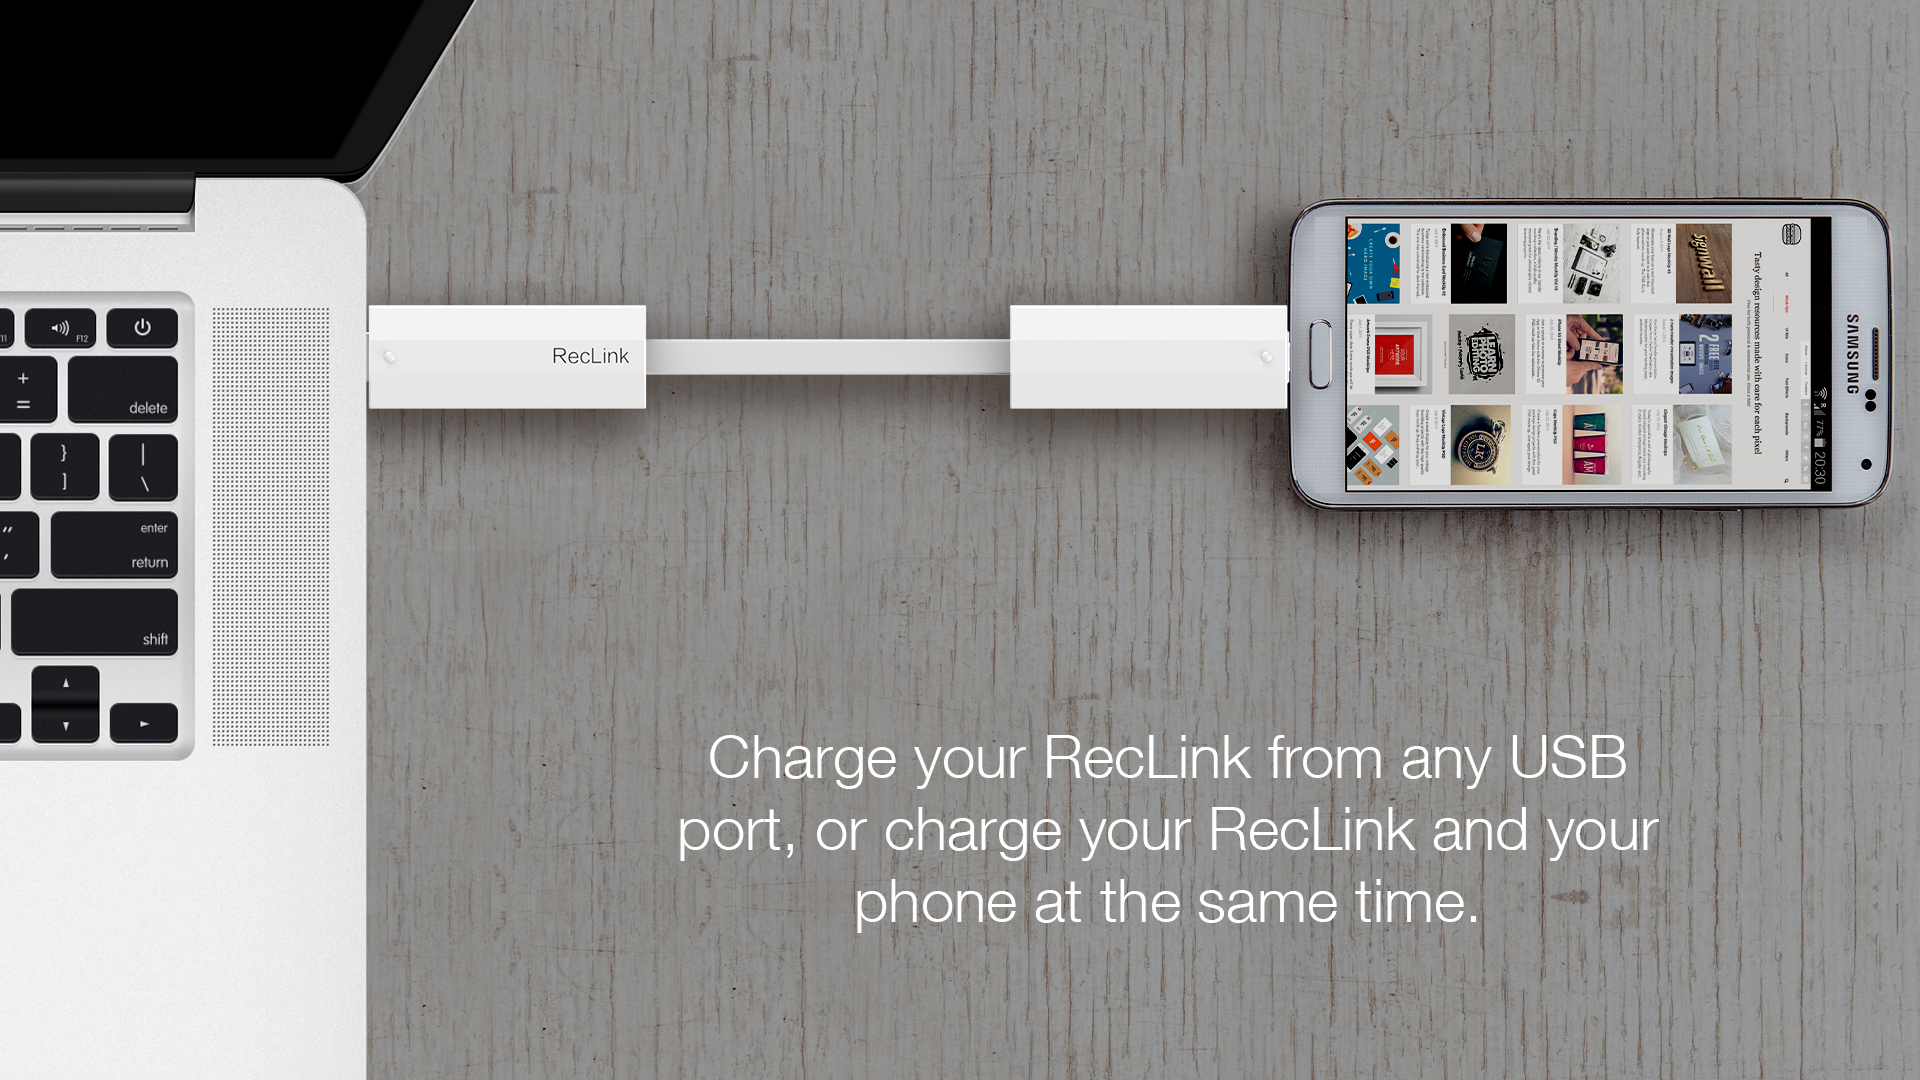 Charge your RecLink from any USB port, or charge your RecLink and your phone at the same time. phone at the same time.